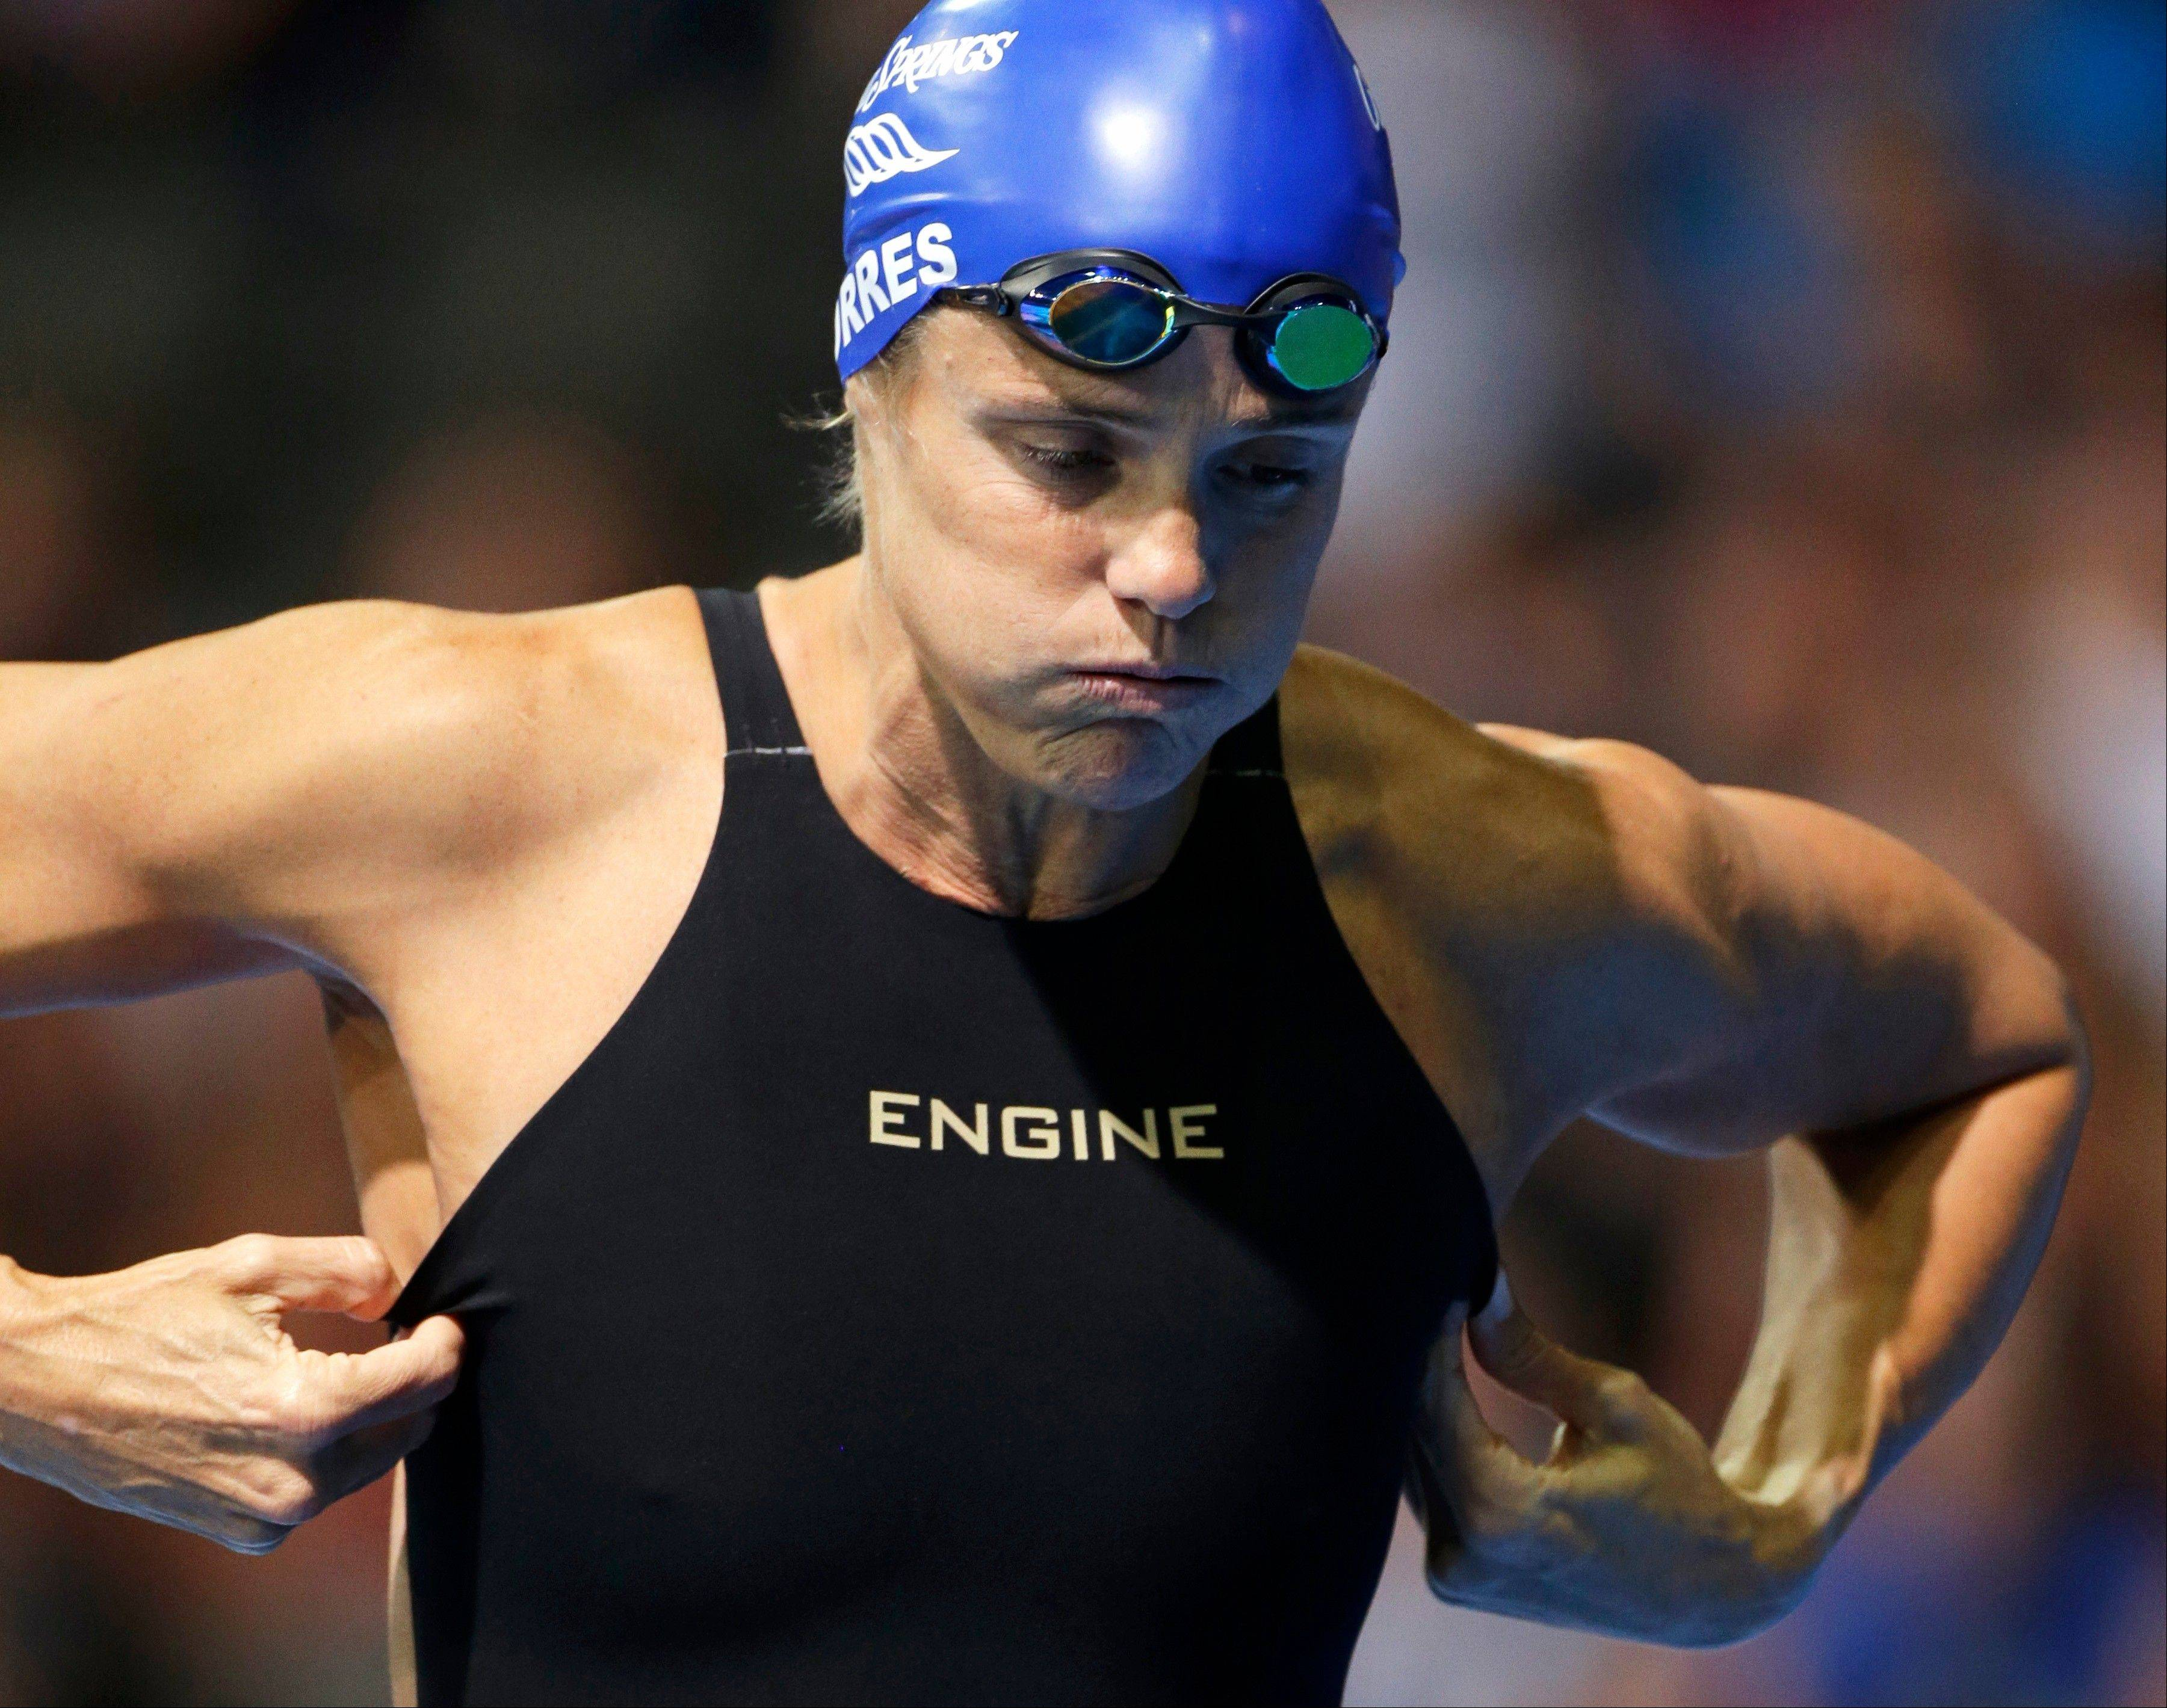 Dara Torres, who was trying to make it to her sixth Olympics, just missed making the U.S. swim team when she came in fourth in a women�s 50-meter freestyle semifinal at the U.S. Olympic swimming trials on Monday in Omaha, Neb.